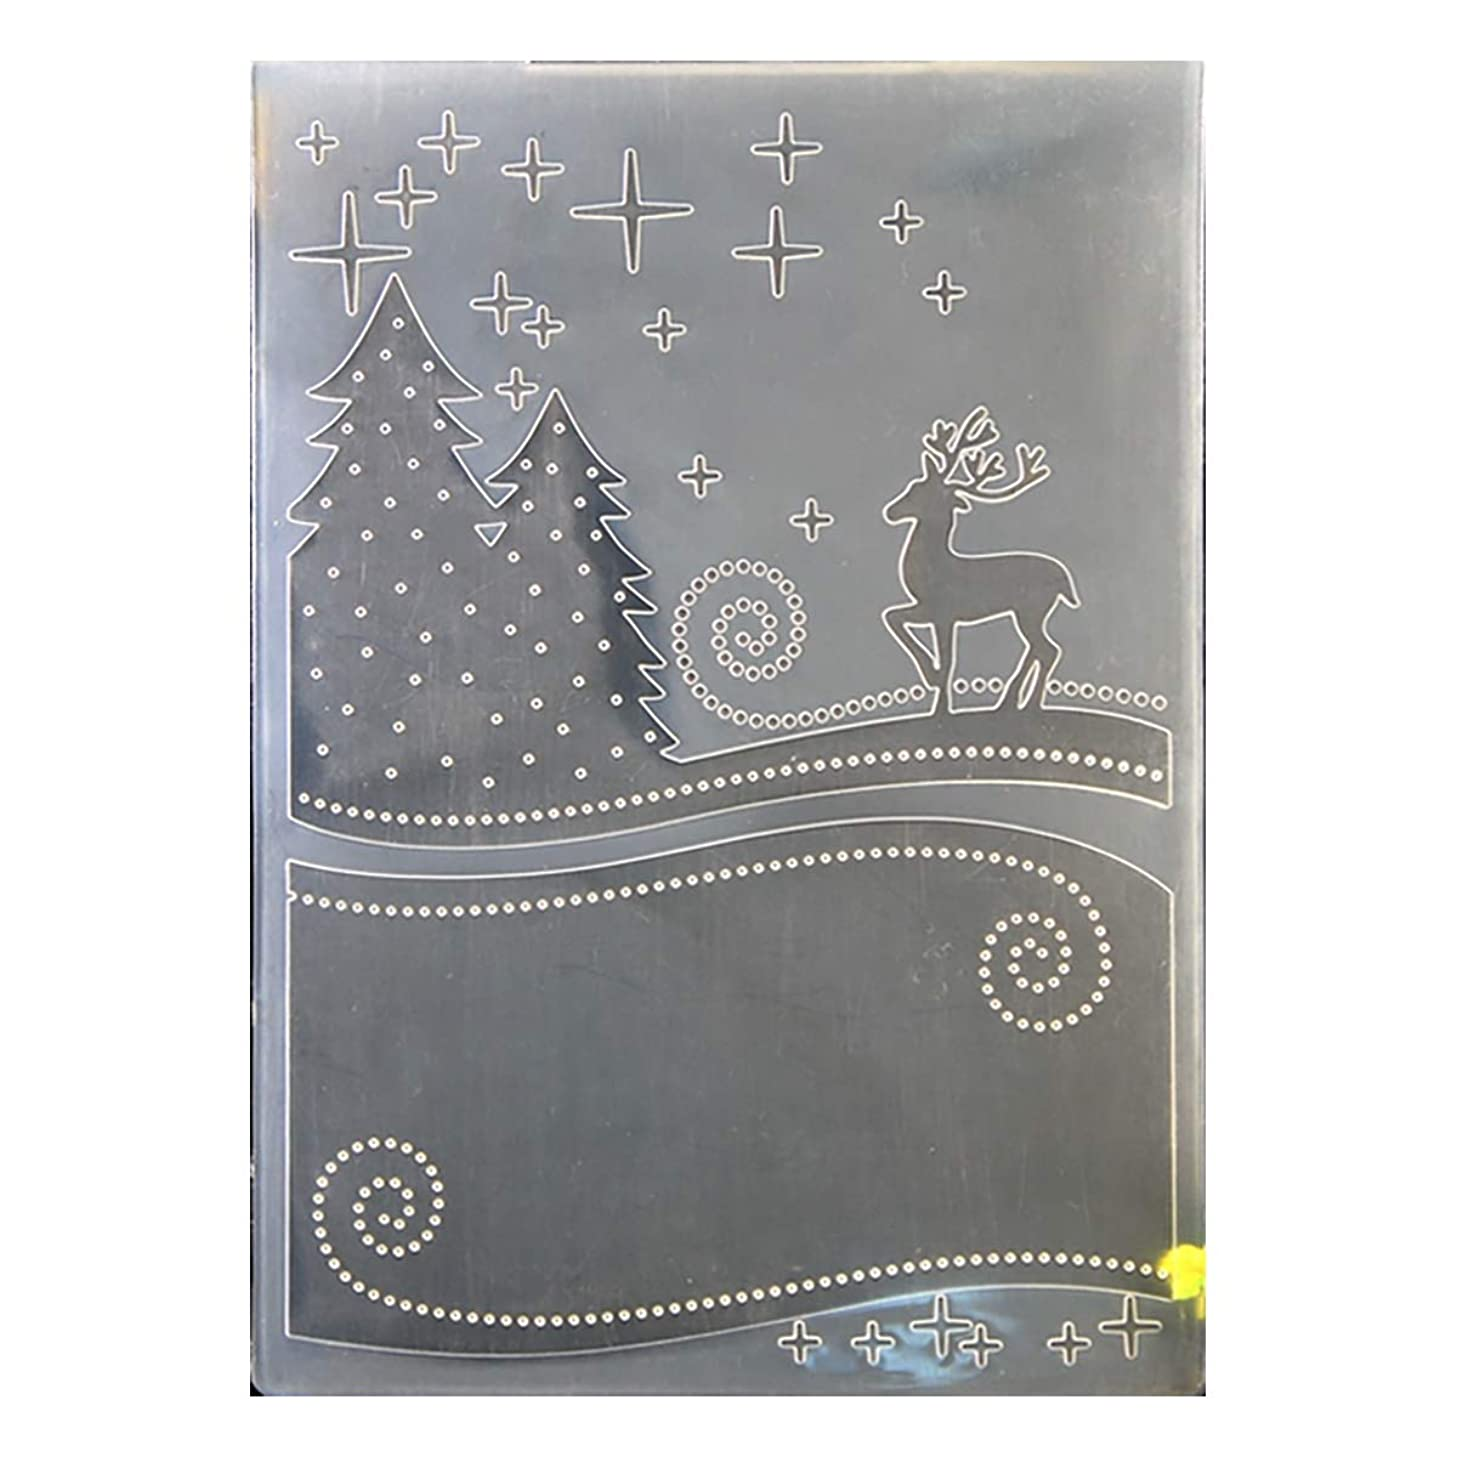 Kwan Crafts Merry Christmas Deer Tree Plastic Embossing Folders for Card Making Scrapbooking and Other Paper Crafts, 12.5x17.7cm